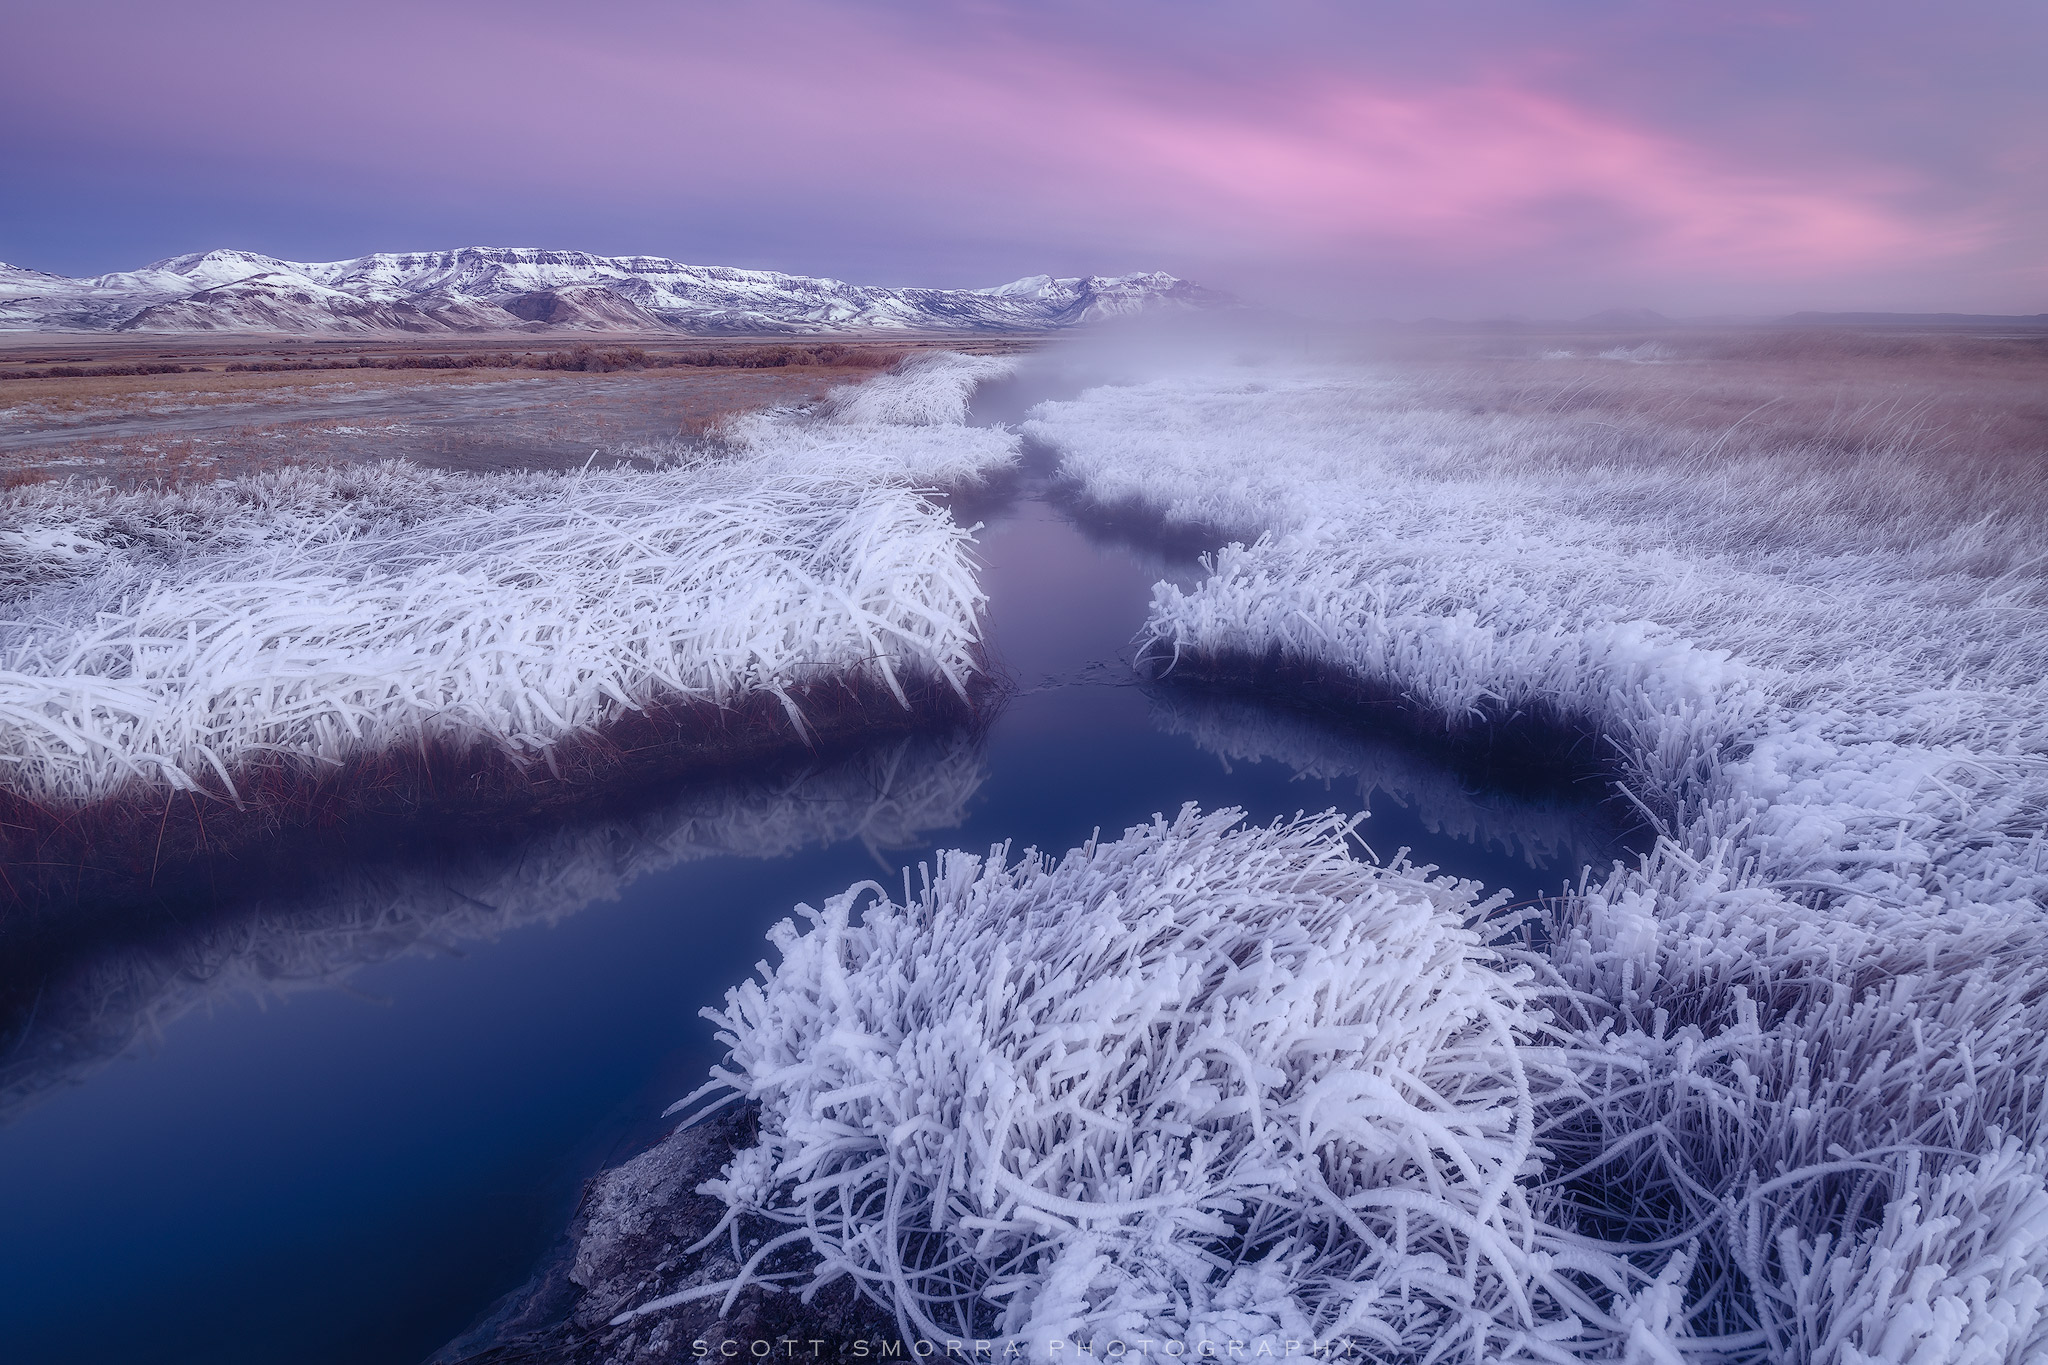 Oregon, Alvord Desert, Borax Hot Springs, Winter, Sunrise, hoarfrost, ice, cold, snow, Steens Mountain, steam, grass, photo